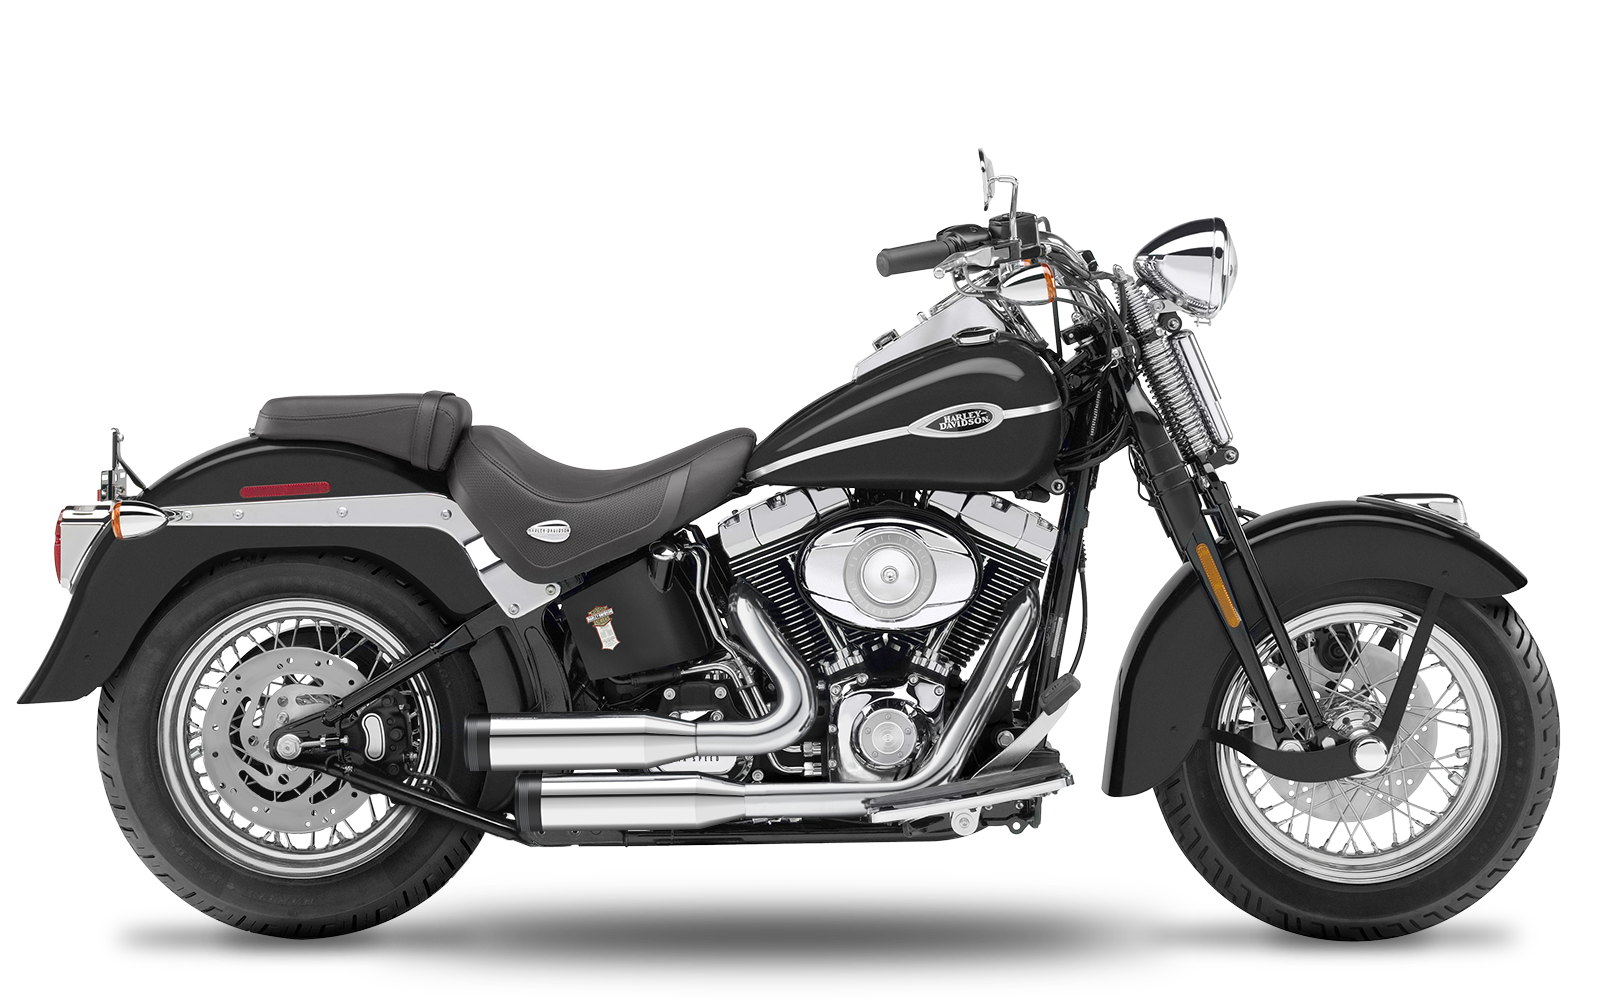 Softail - Springer Classic - TC88 - 2000-2006 - Complete systems adjustable